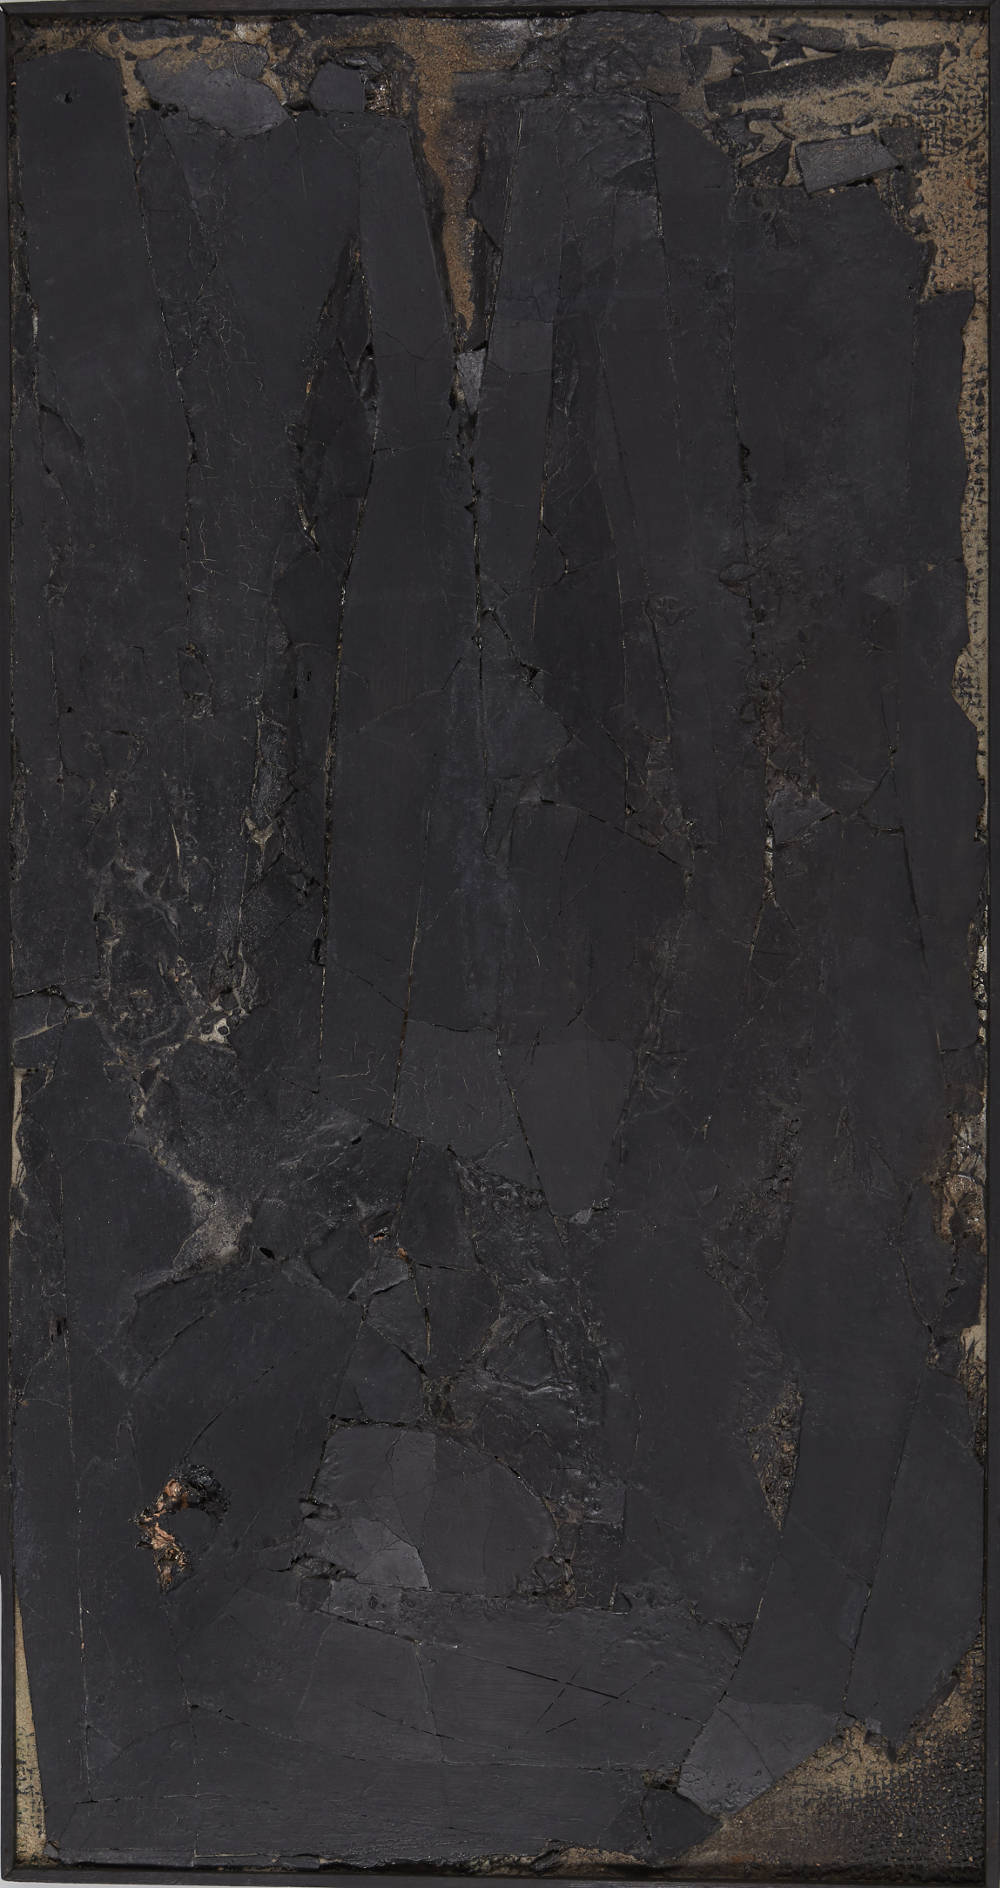 ROBERT MALLARY, Untitled, 1957-1958. Mixed media: Found materials, resin and pigment mixture on board 44 1/2 x 23 1/2 x 2 in 113 x 59.7 x 5 cm